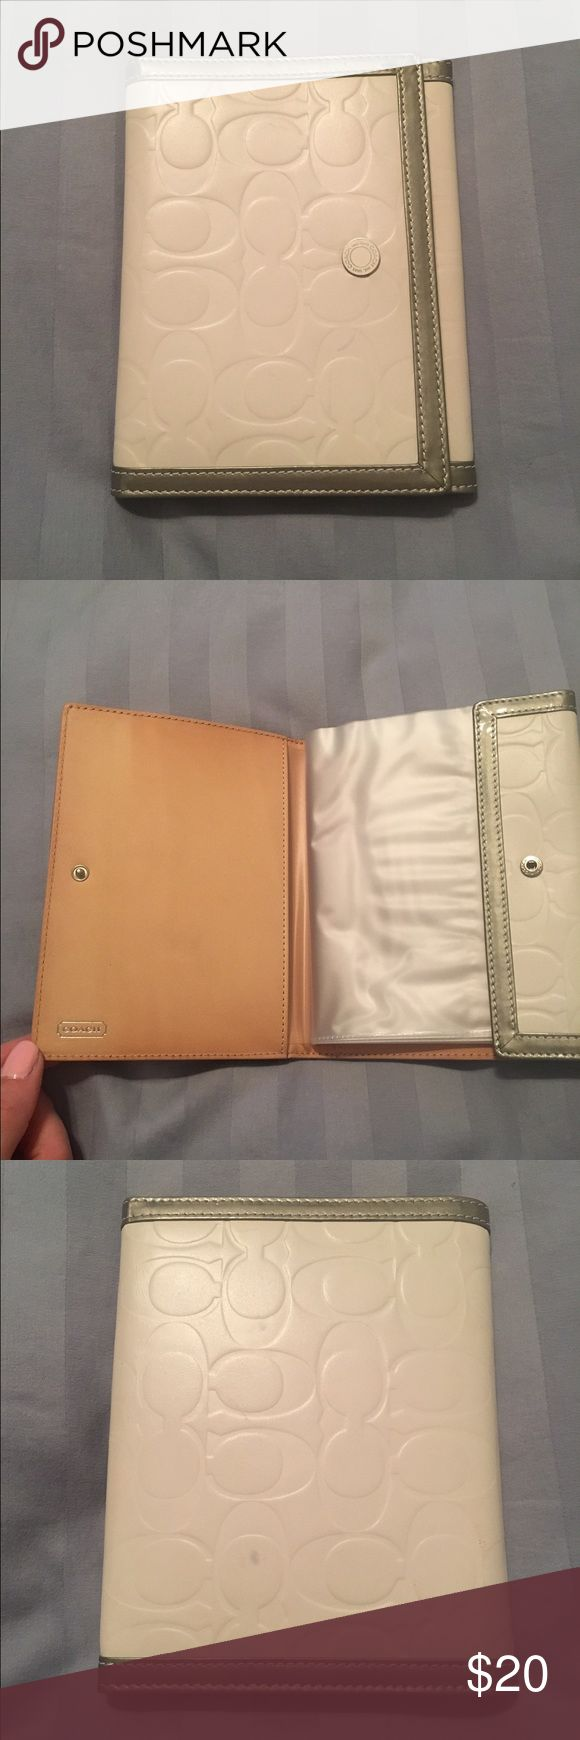 Coach Travel Photo Album In good condition, minor discoloration on the inside leather panel. Small black marks on the back and front. Photos have never been stored in the sleeves. Coach Accessories Key & Card Holders